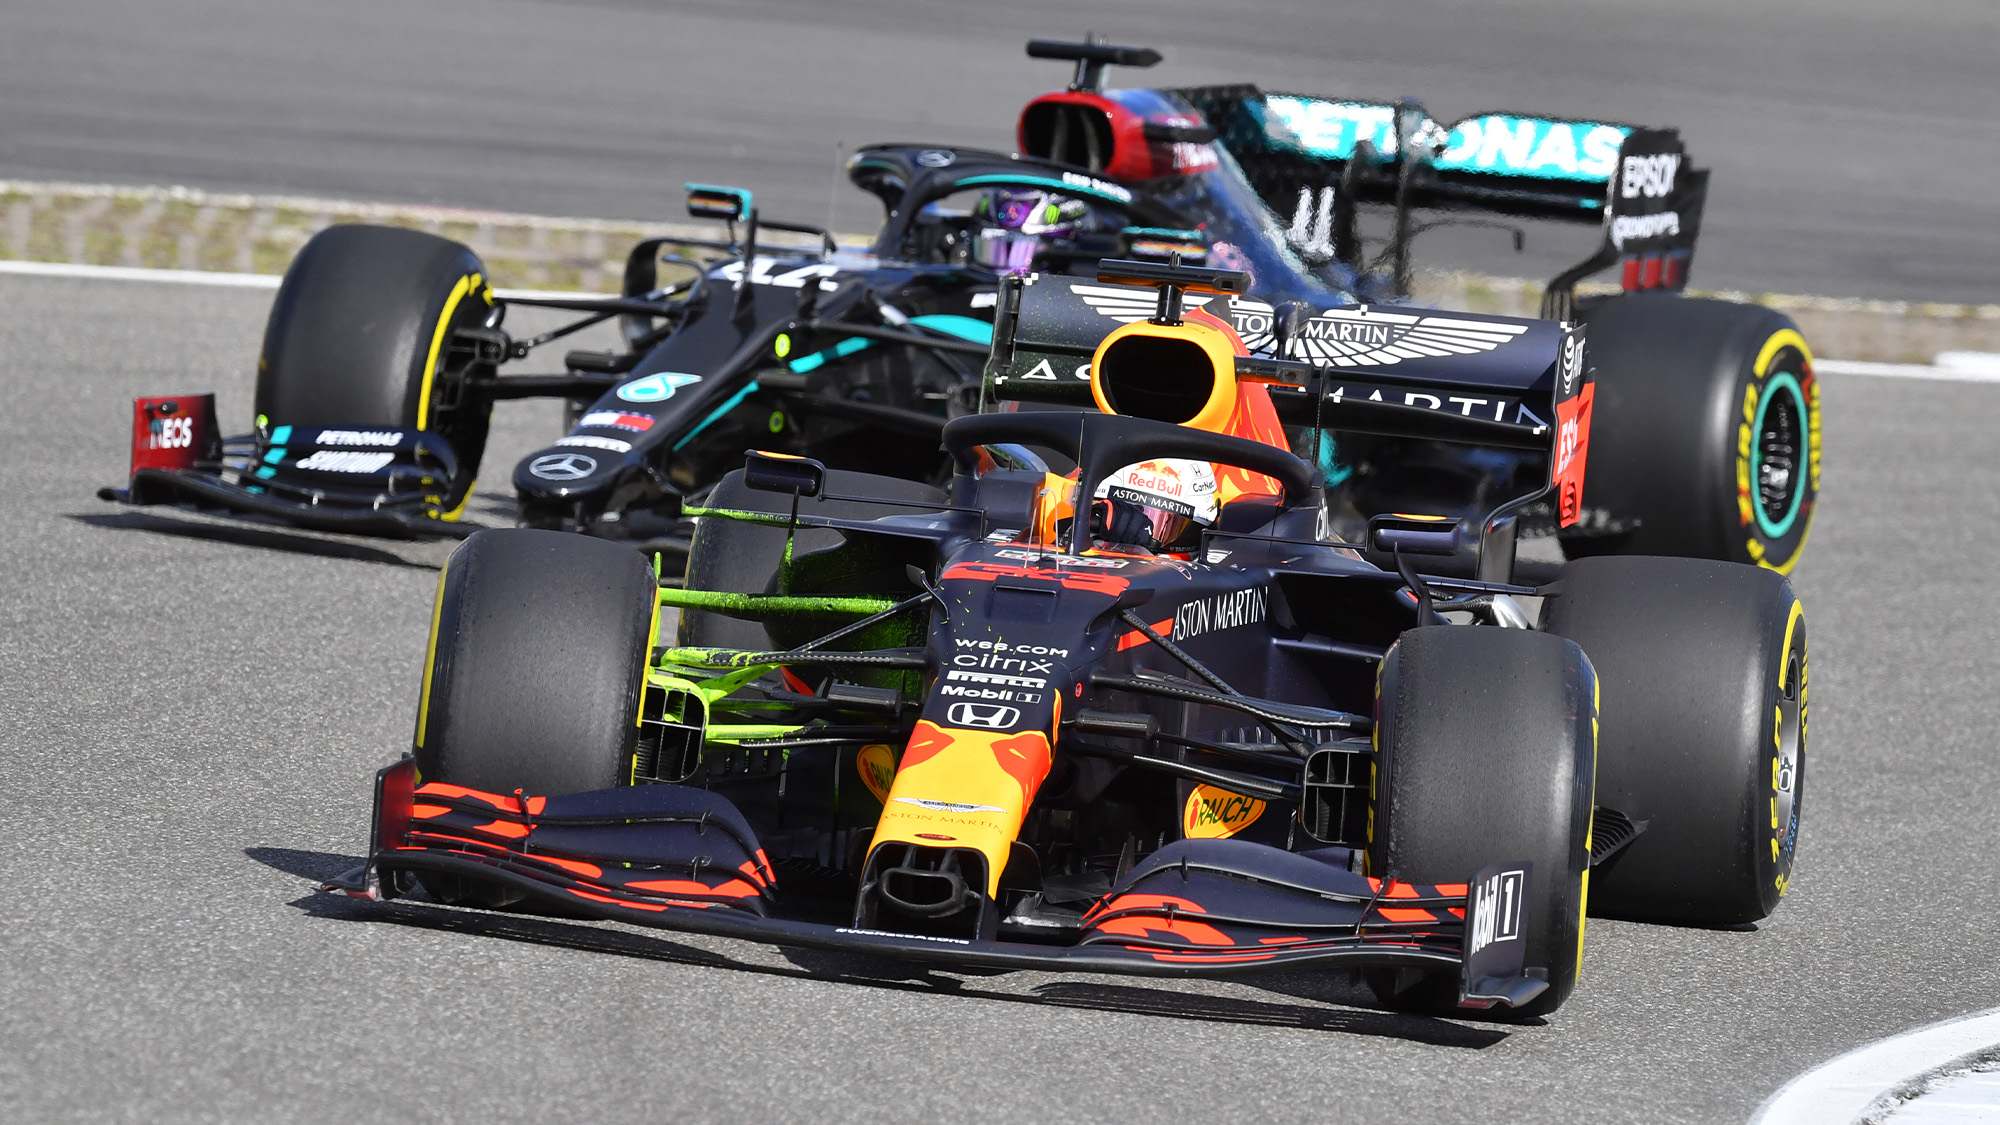 Max Verstappen ahead of Lewis Hamilton in 2020